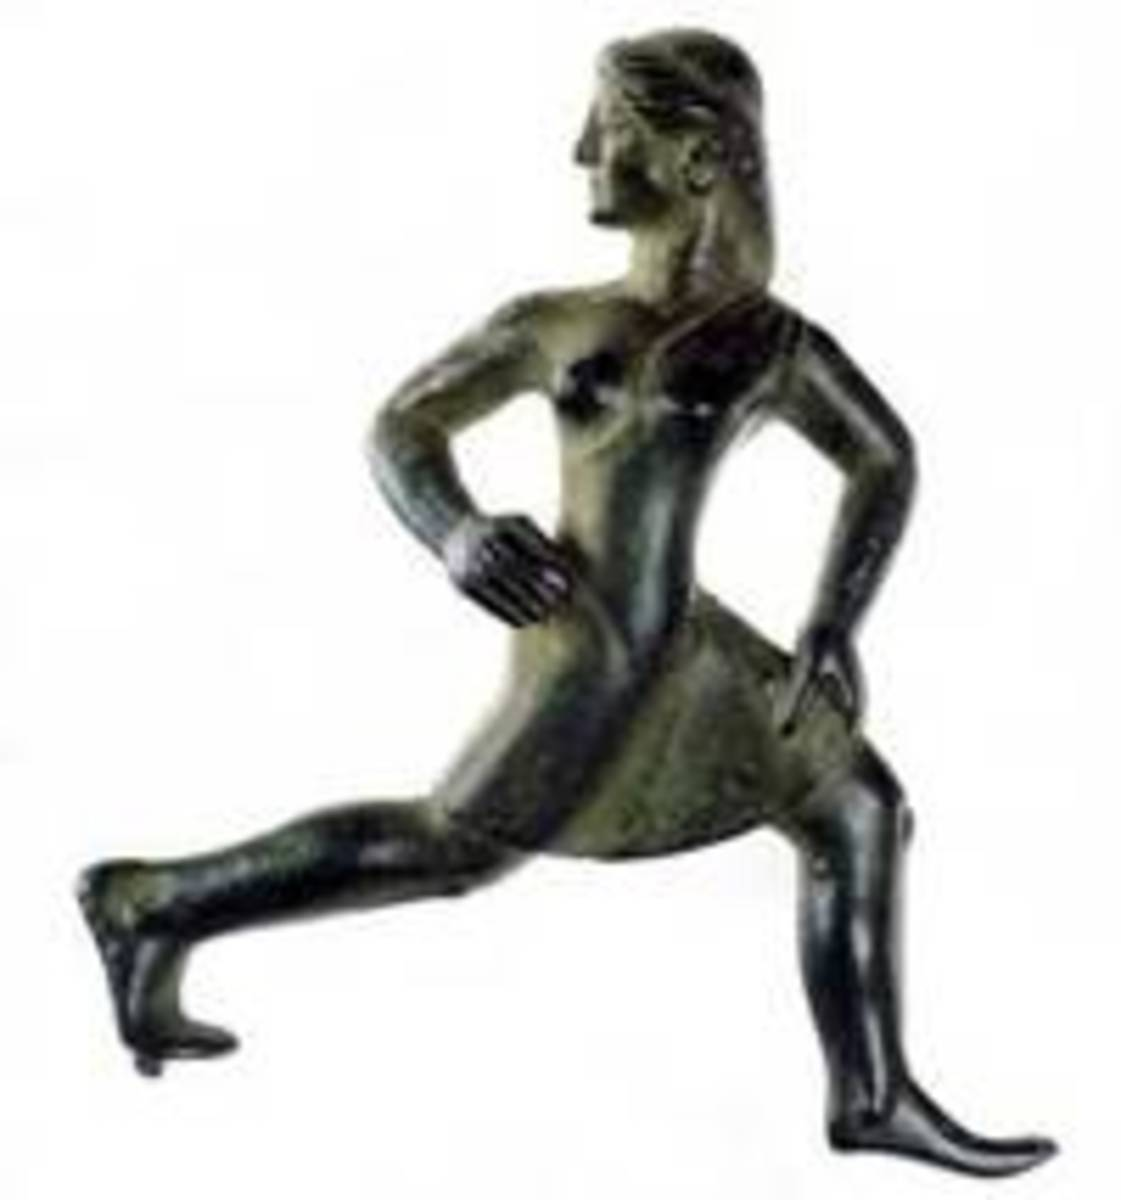 Spartan maiden running a foot-race, c. 520 BC